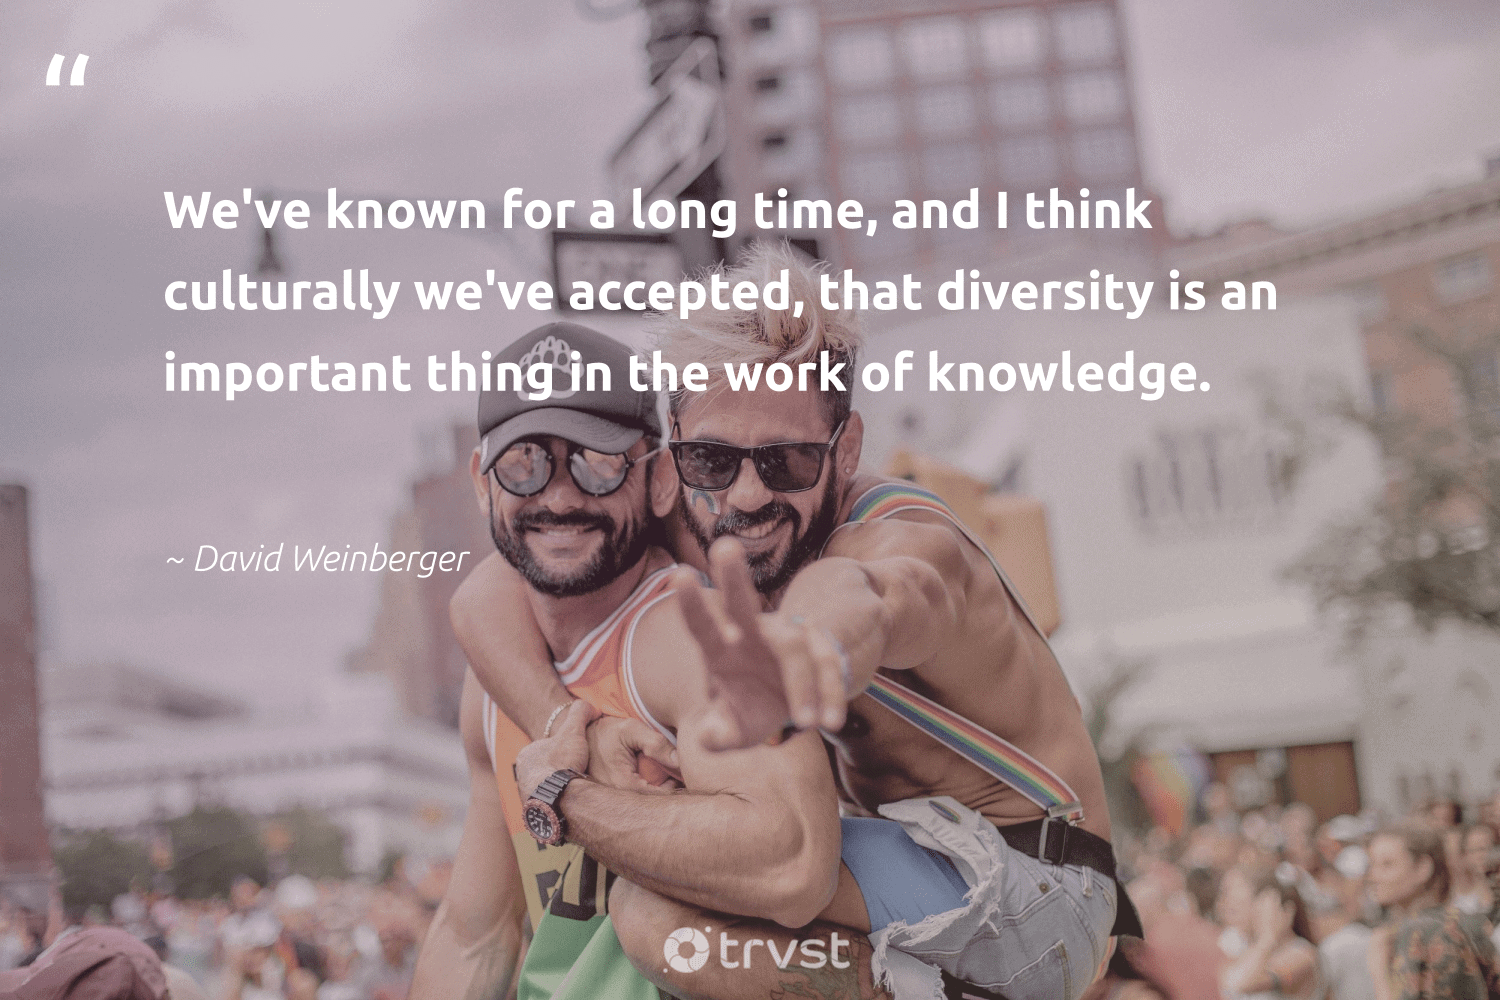 """""""We've known for a long time, and I think culturally we've accepted, that diversity is an important thing in the work of knowledge.""""  - David Weinberger #trvst #quotes #diversity #representationmatters #discrimination #socialchange #bethechange #beinspired #inclusion #giveback #weareallone #thinkgreen"""